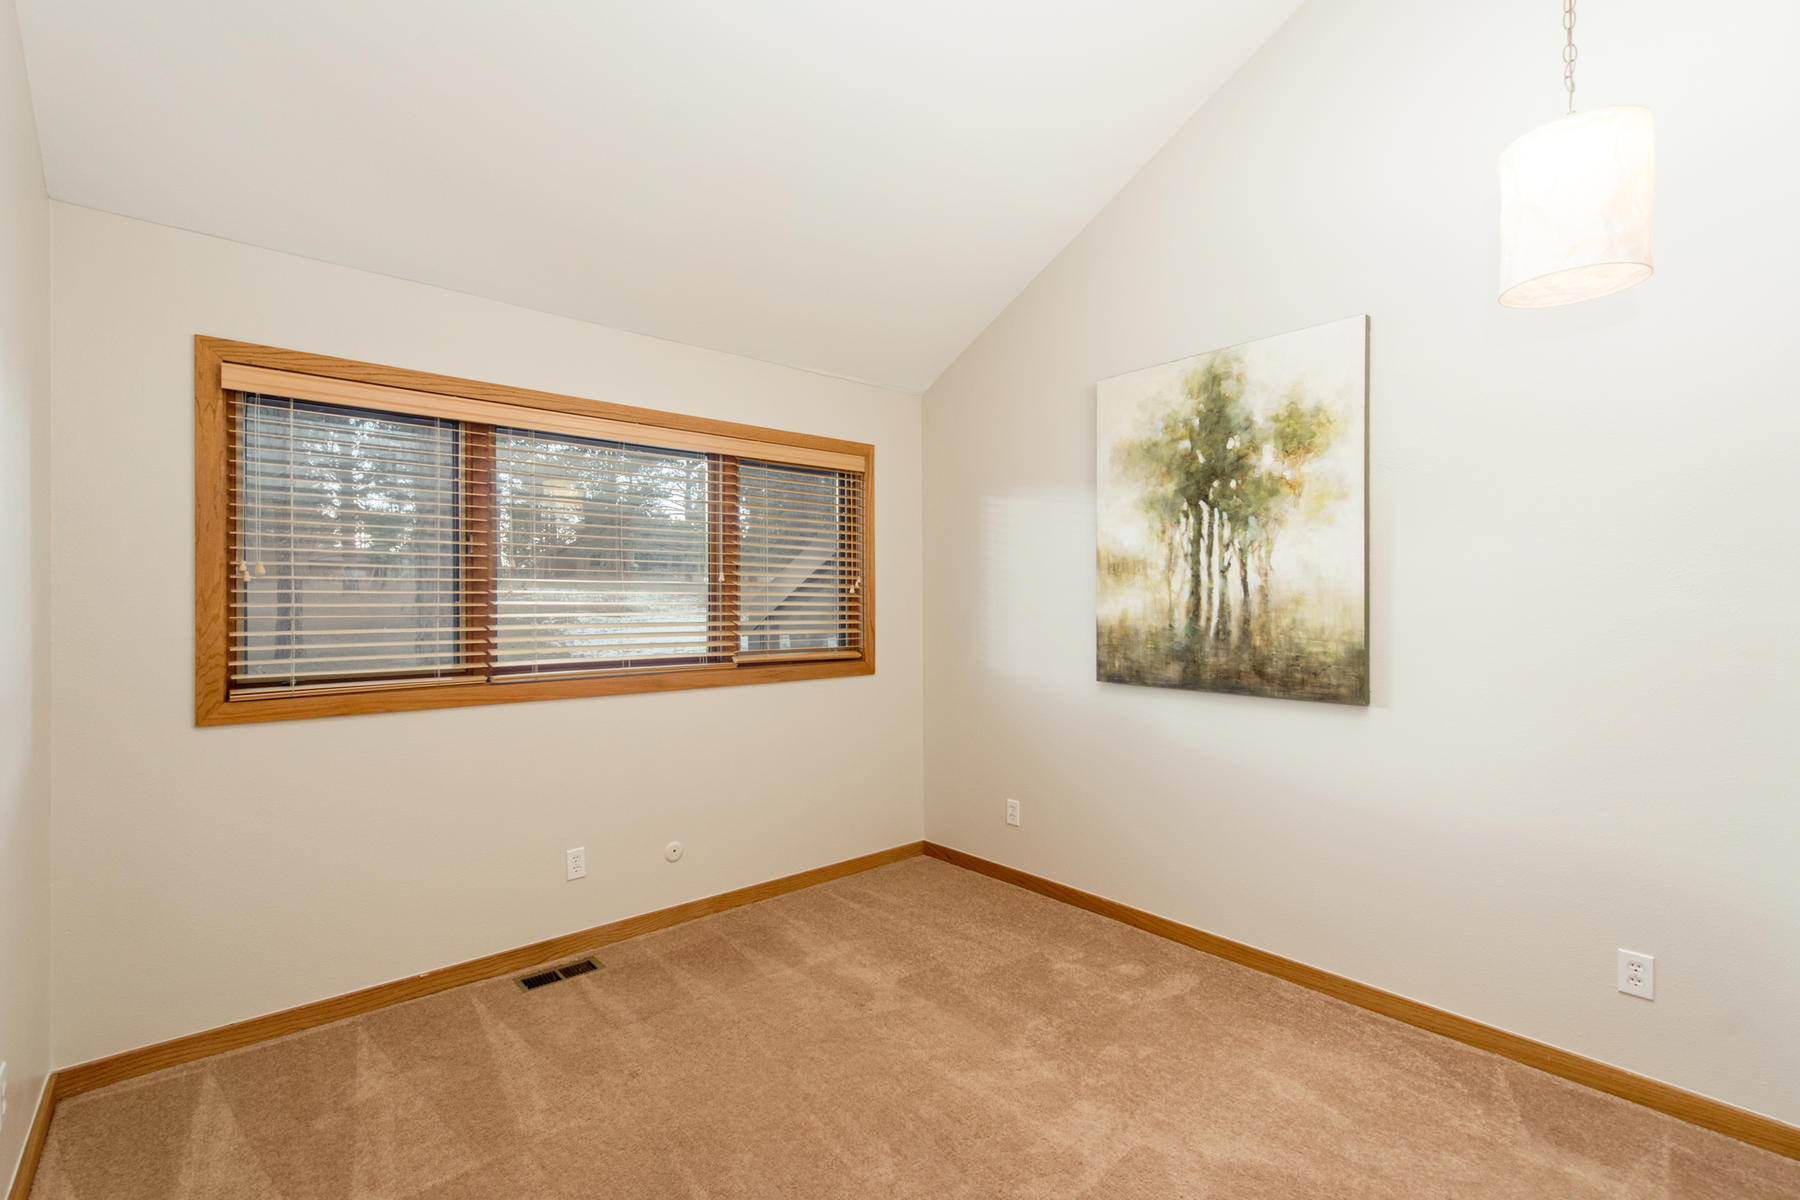 Additional photo for property listing at Appealing  Home  with Easy Access on Park-like Lot with Sparkling City Views 23486 Currant Drive Golden, Colorado 80401 United States